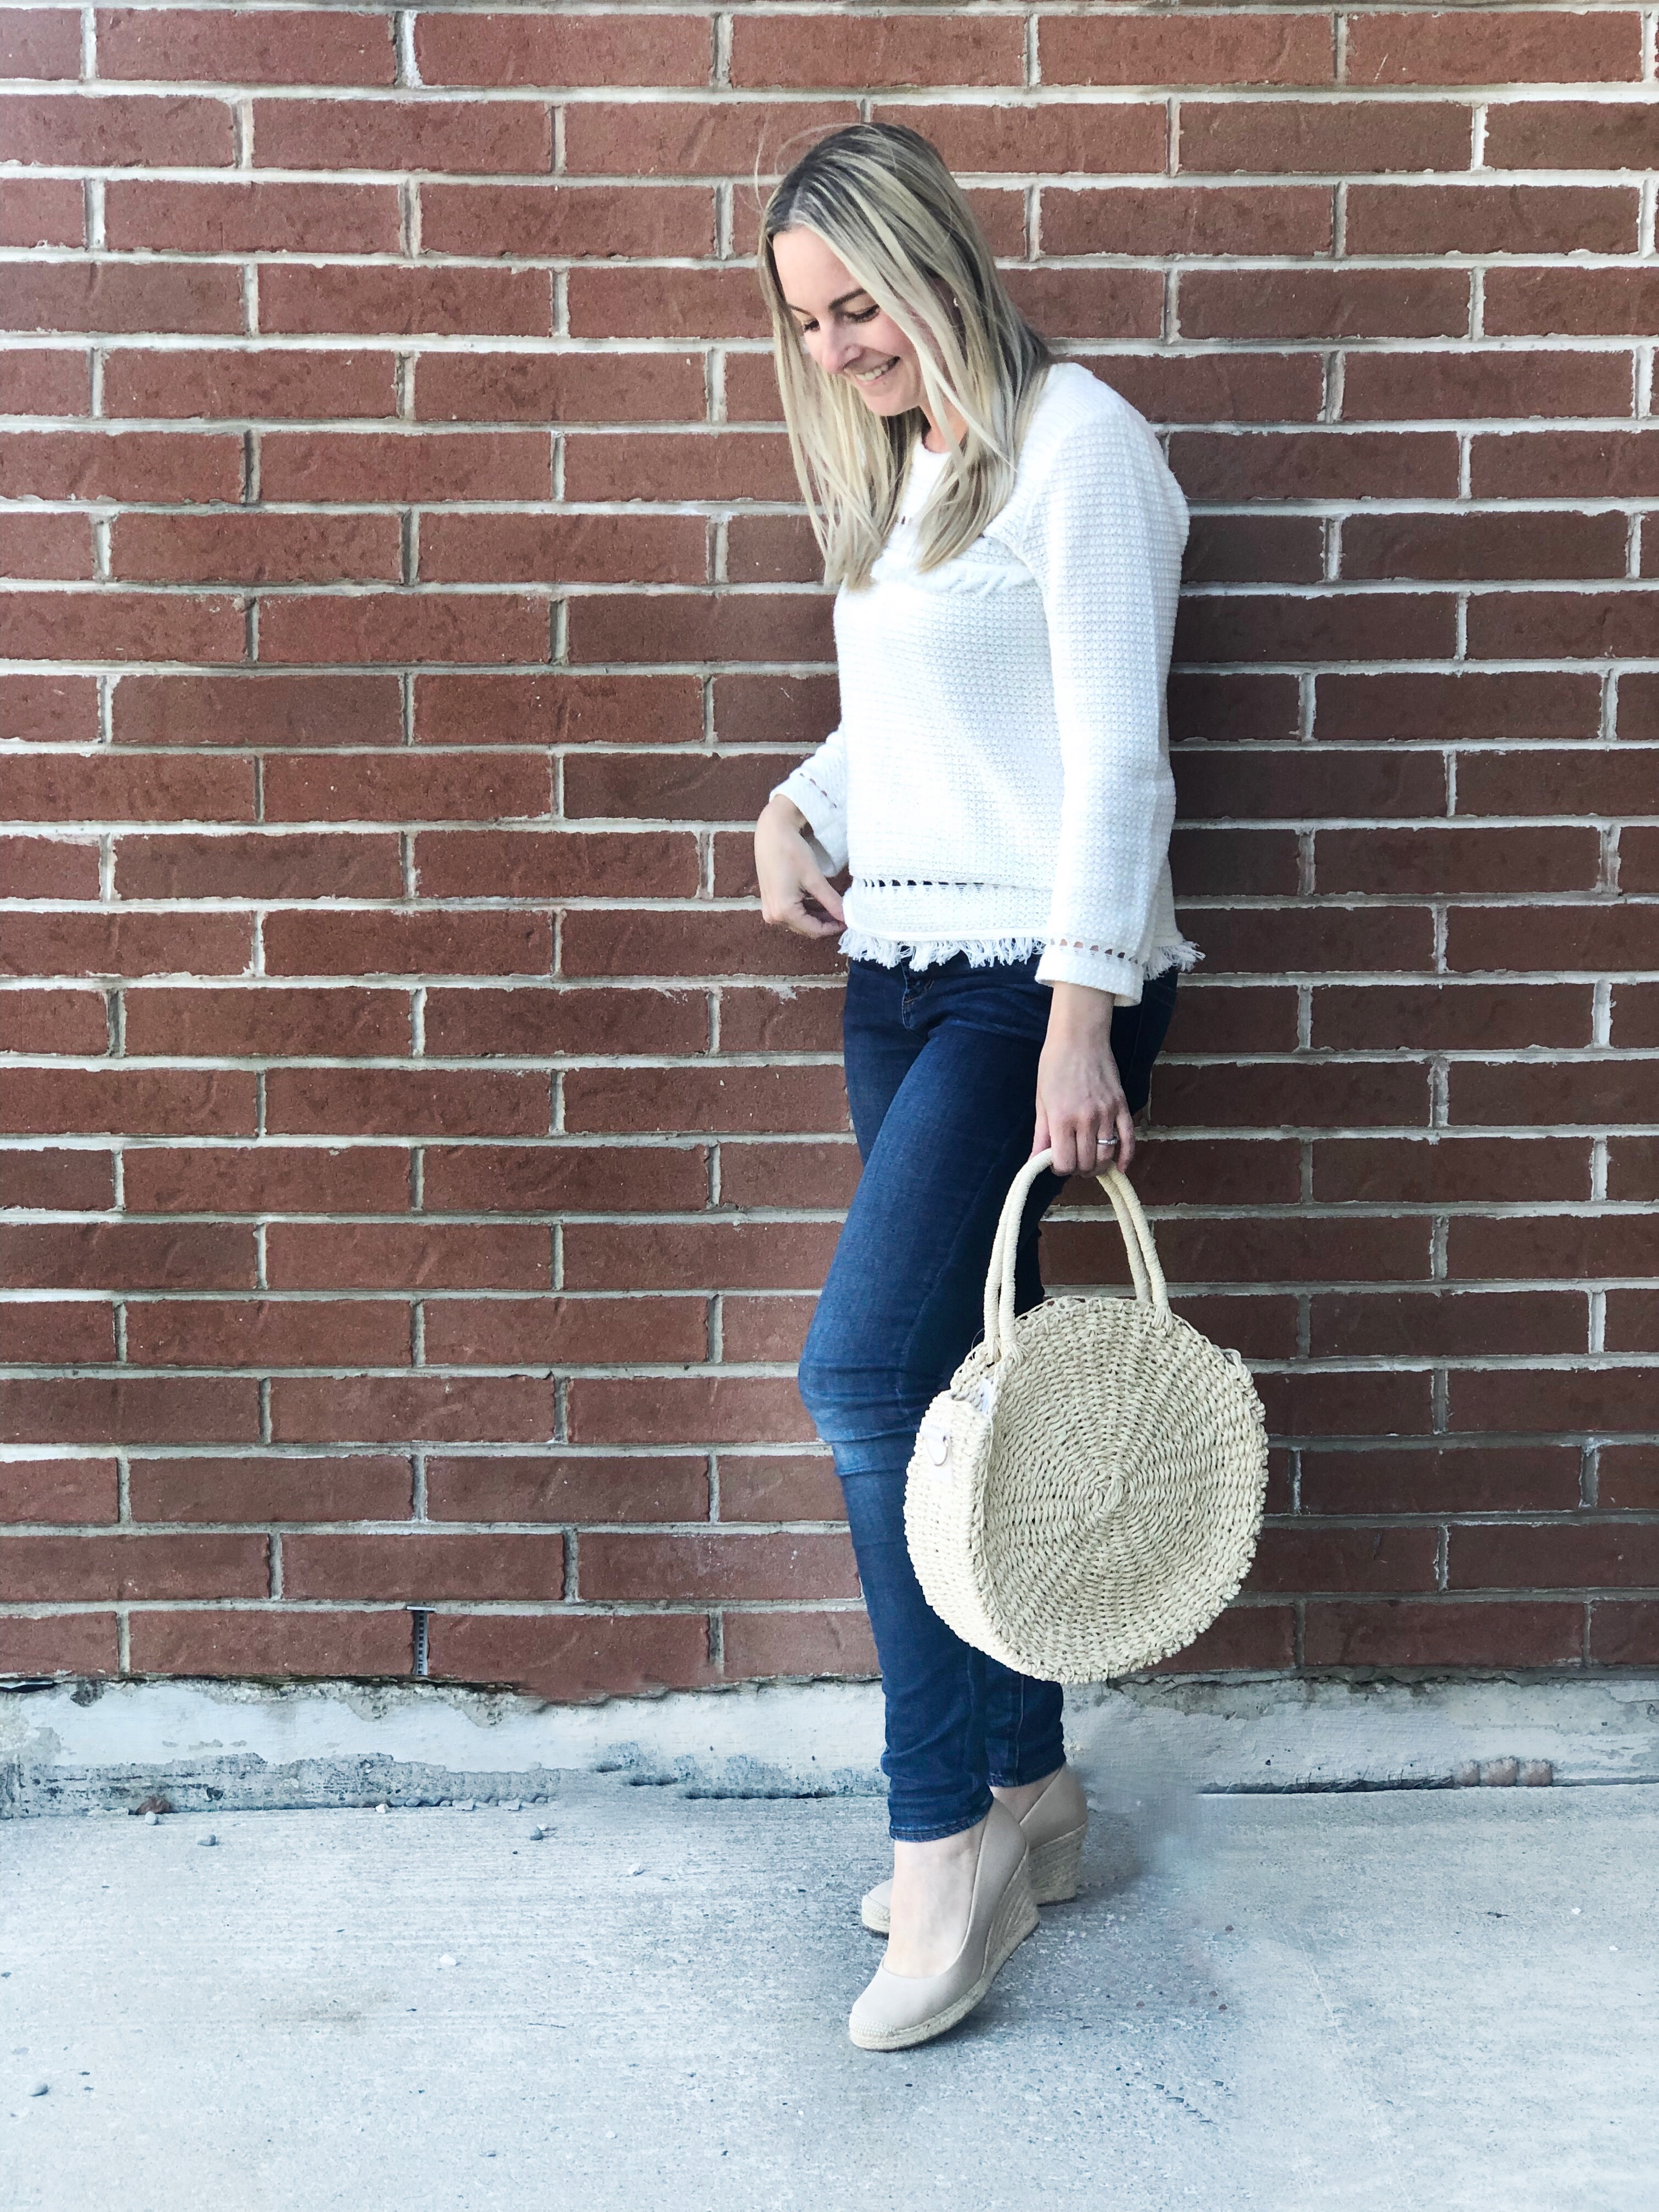 J Crew fringe sweater- Spring look on livin' life with style